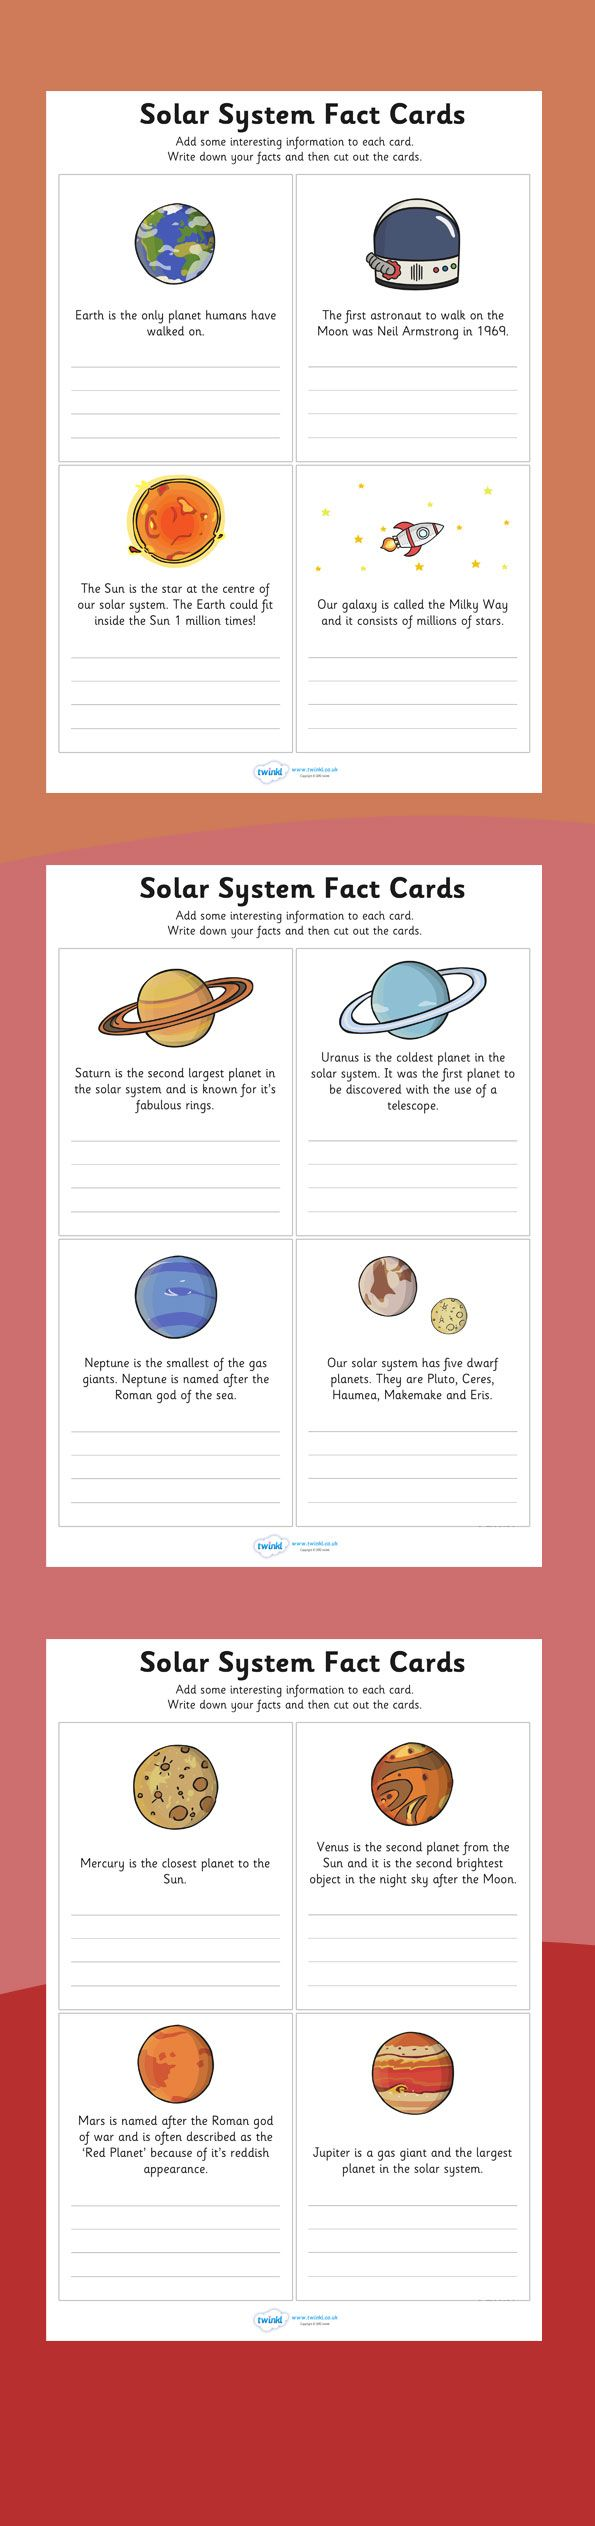 Get 20 solar system activities ideas on pinterest without signing finish the solar system fact cards twinkl robcynllc Images